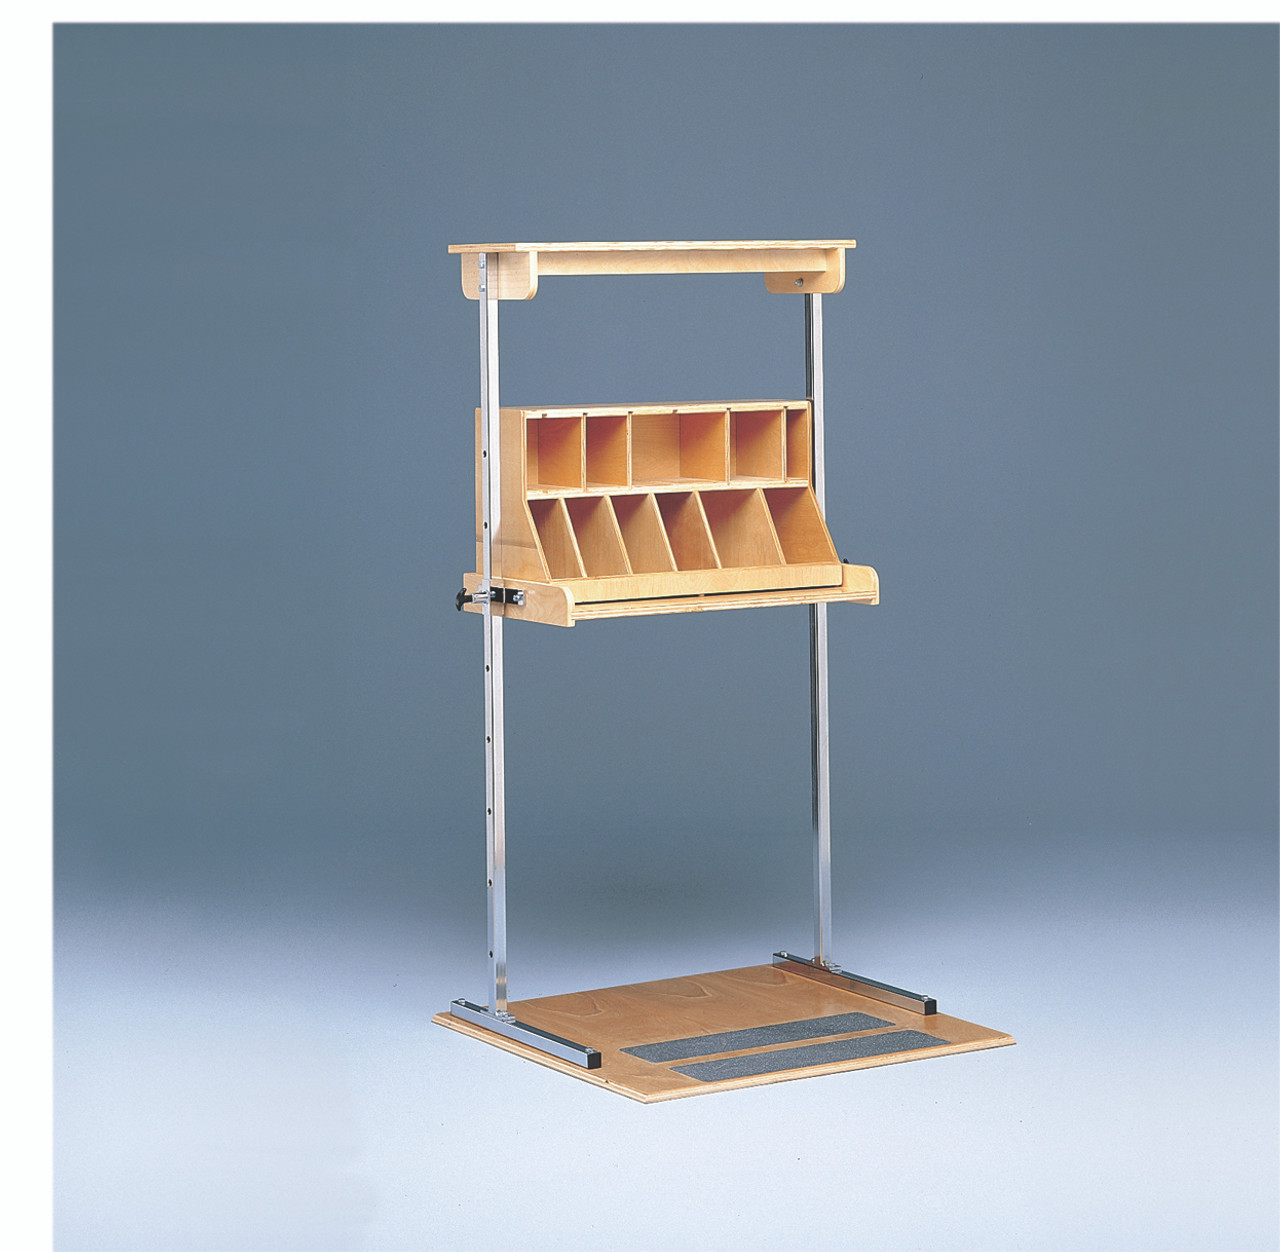 Work Hardening - Adjustable Height Shelf Assembly with Sorting Bin